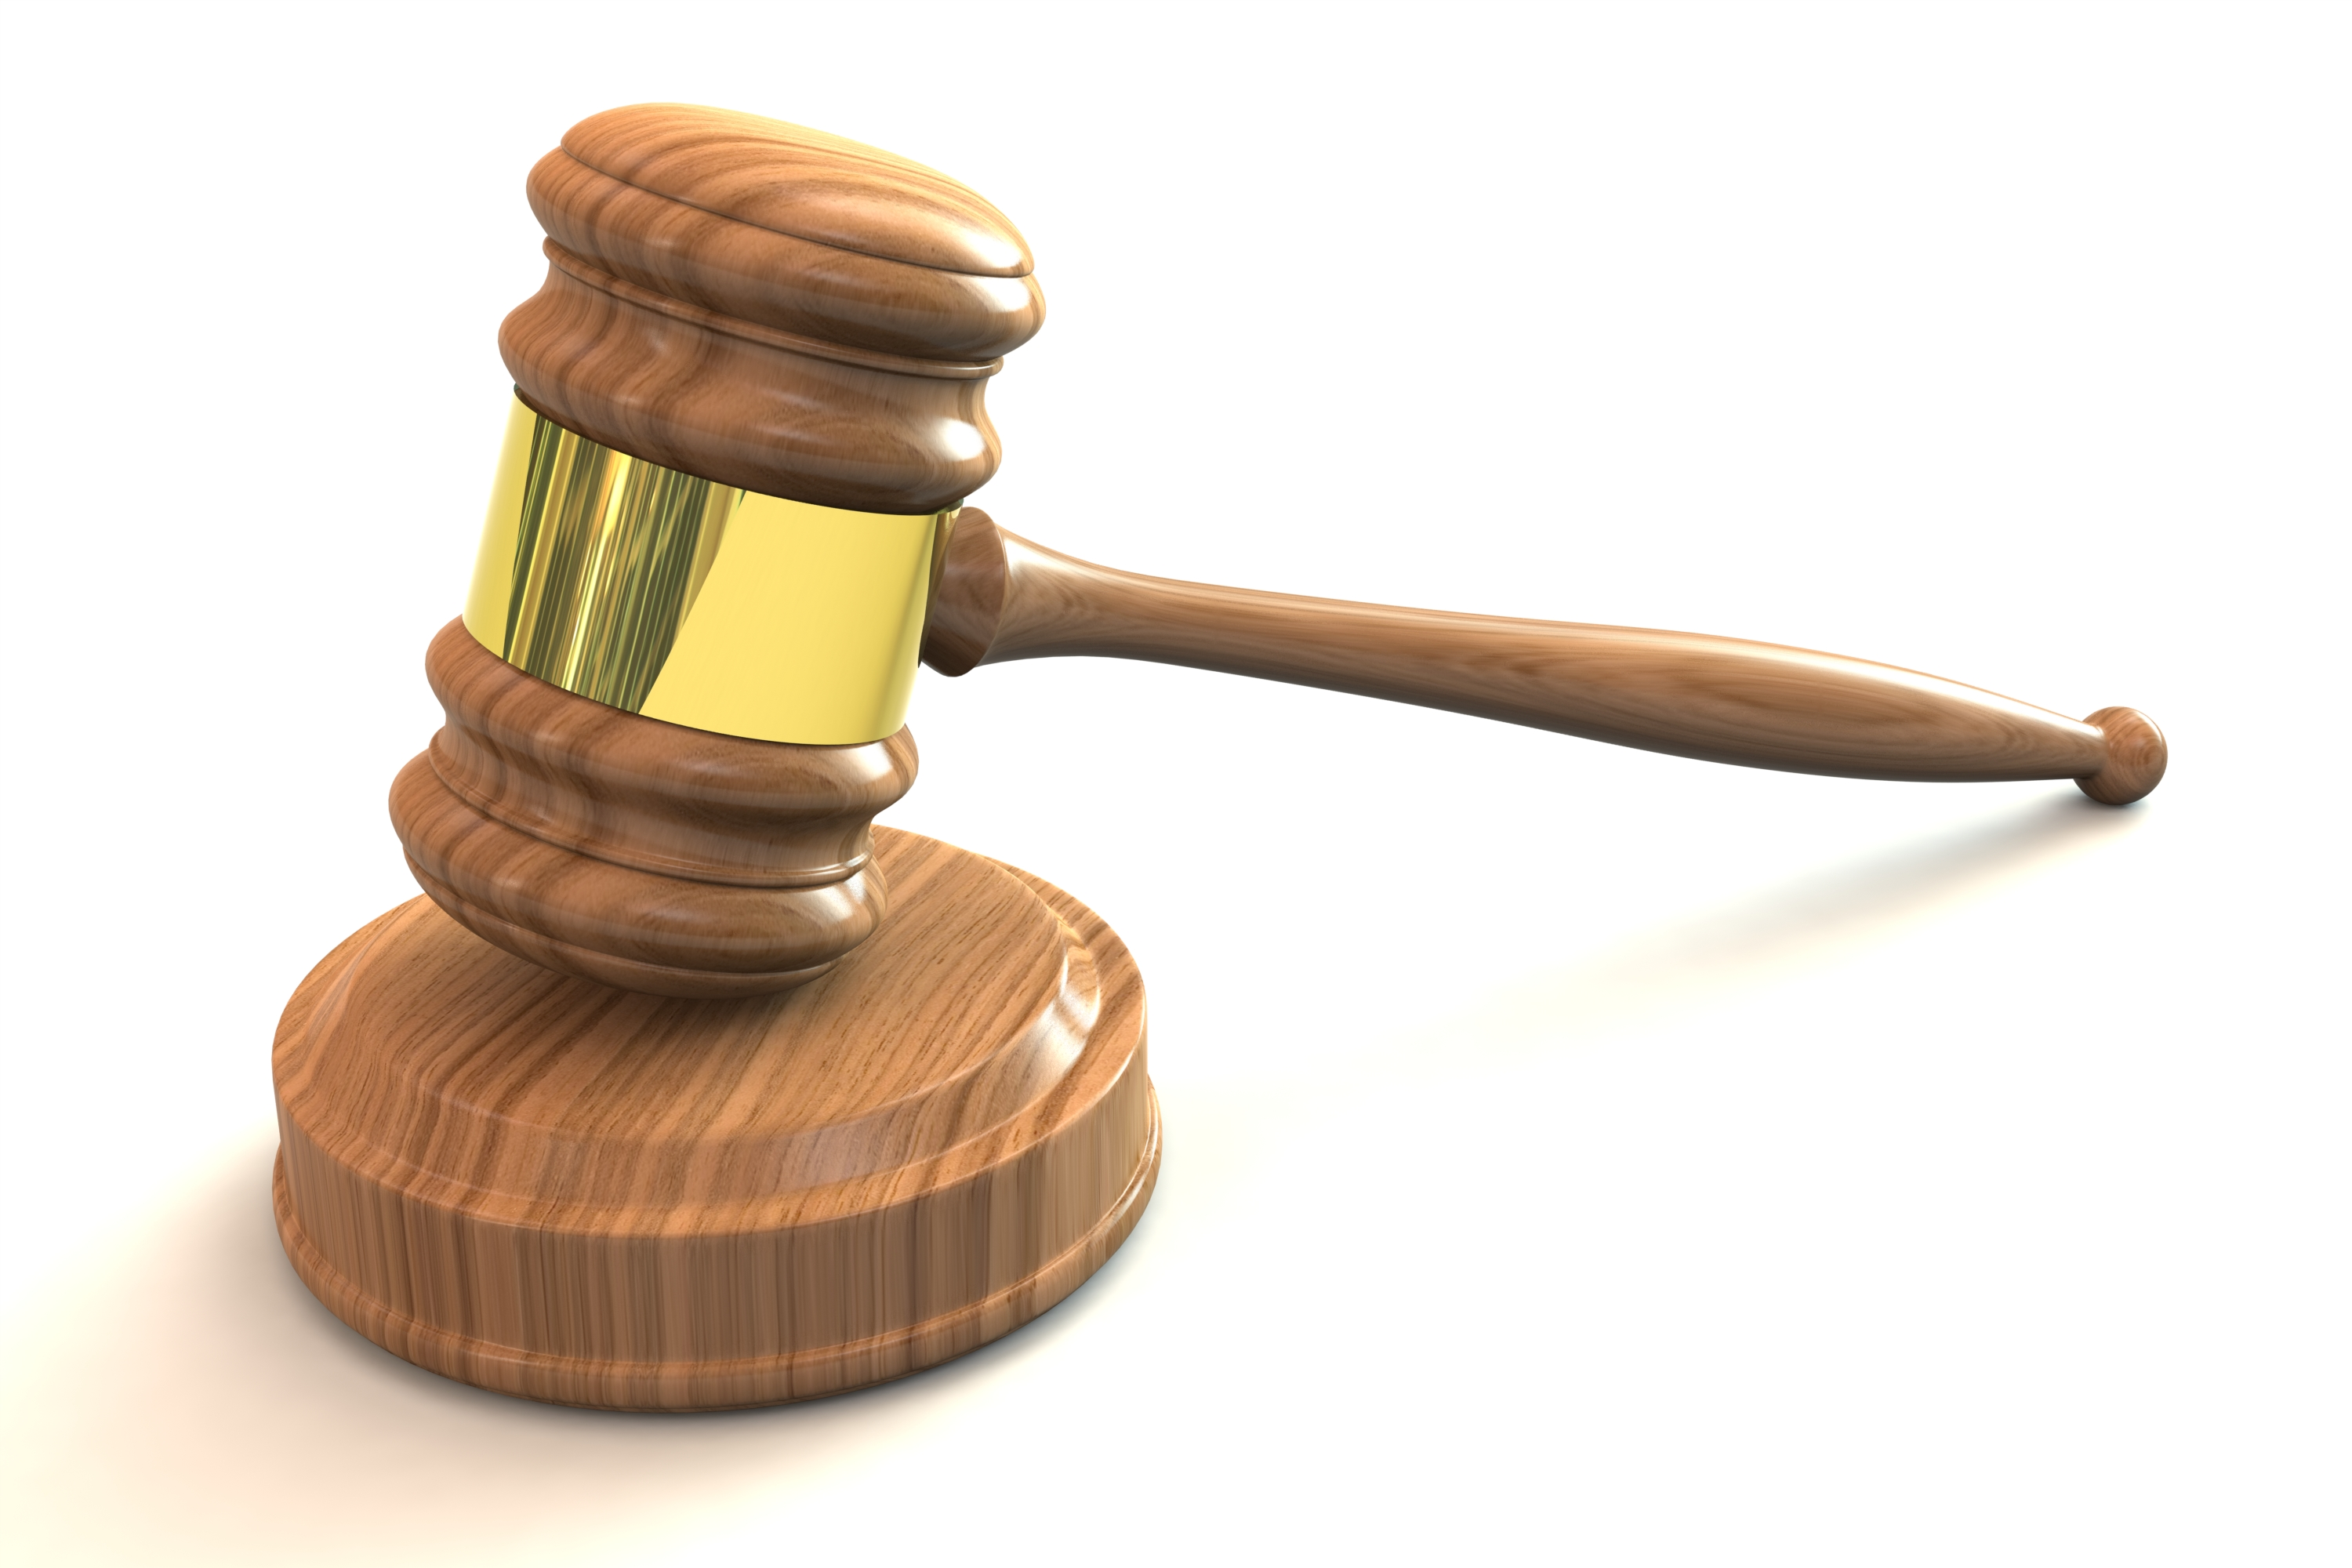 The Court of First Instance in Dubai has charged a former Indian bank manager with embezzling more than AED120,000 from a customer's account. Photo courtesy: Wikimedia